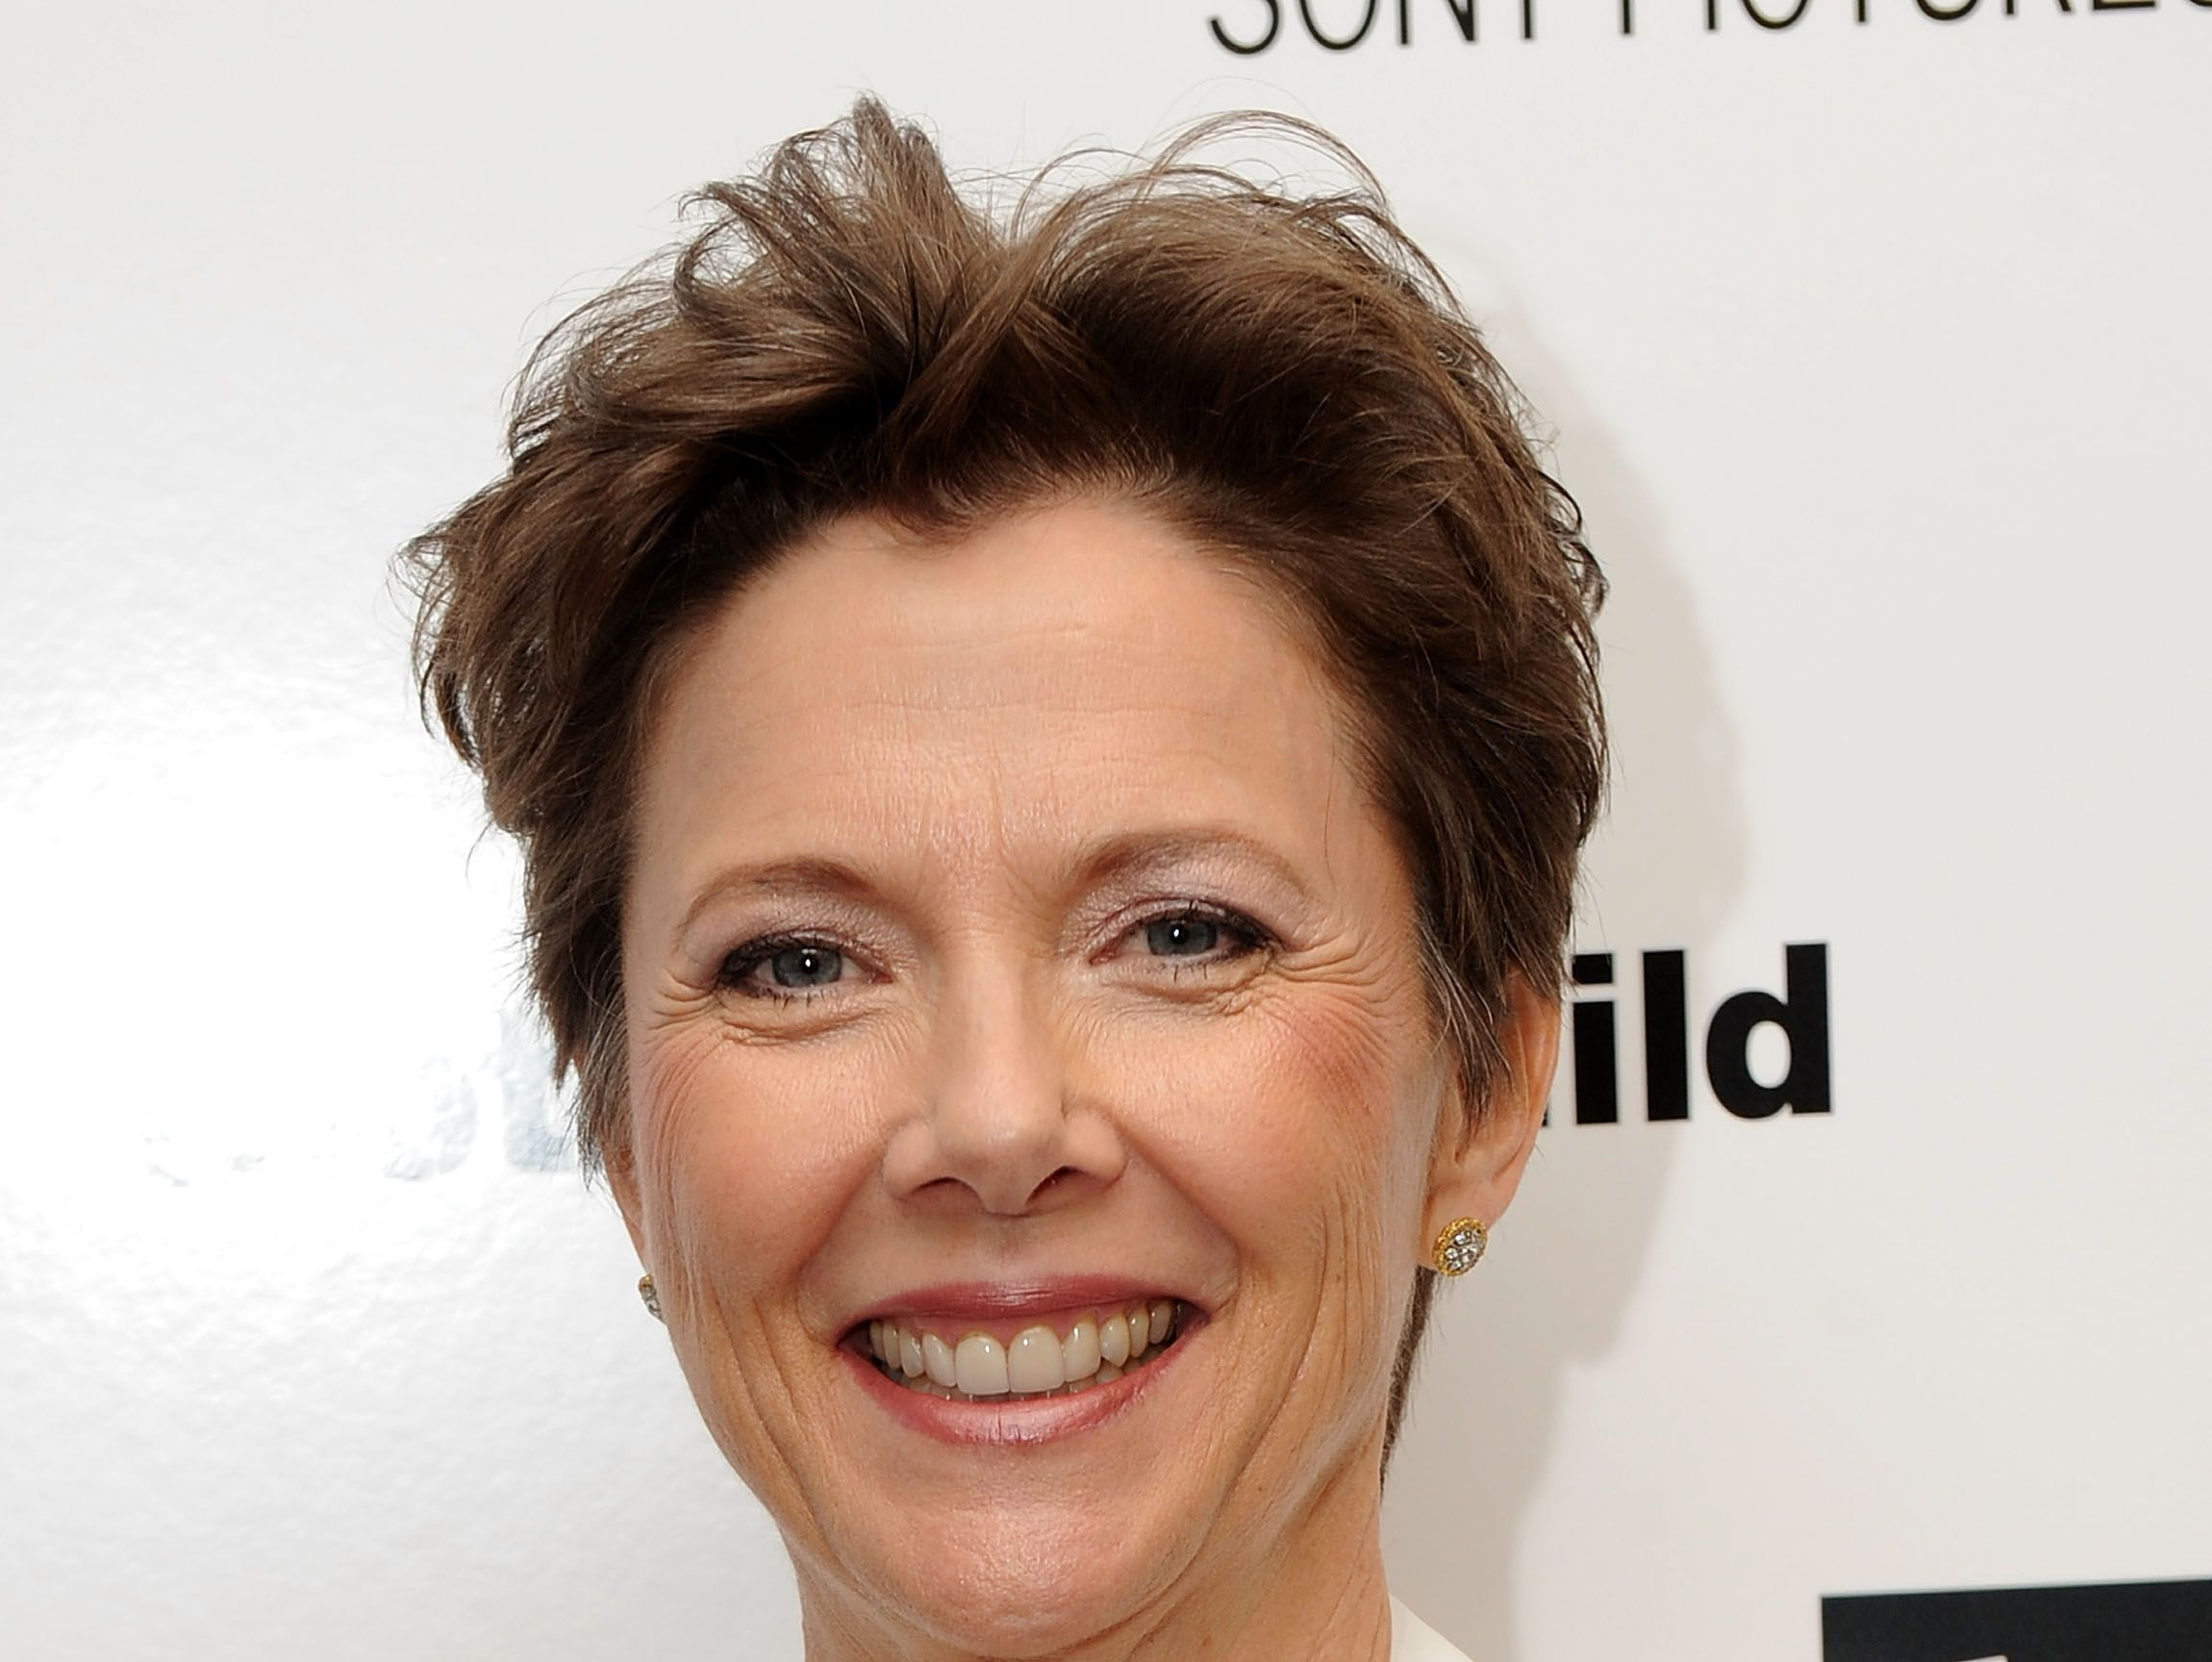 annette bening wallpaper - photo #18